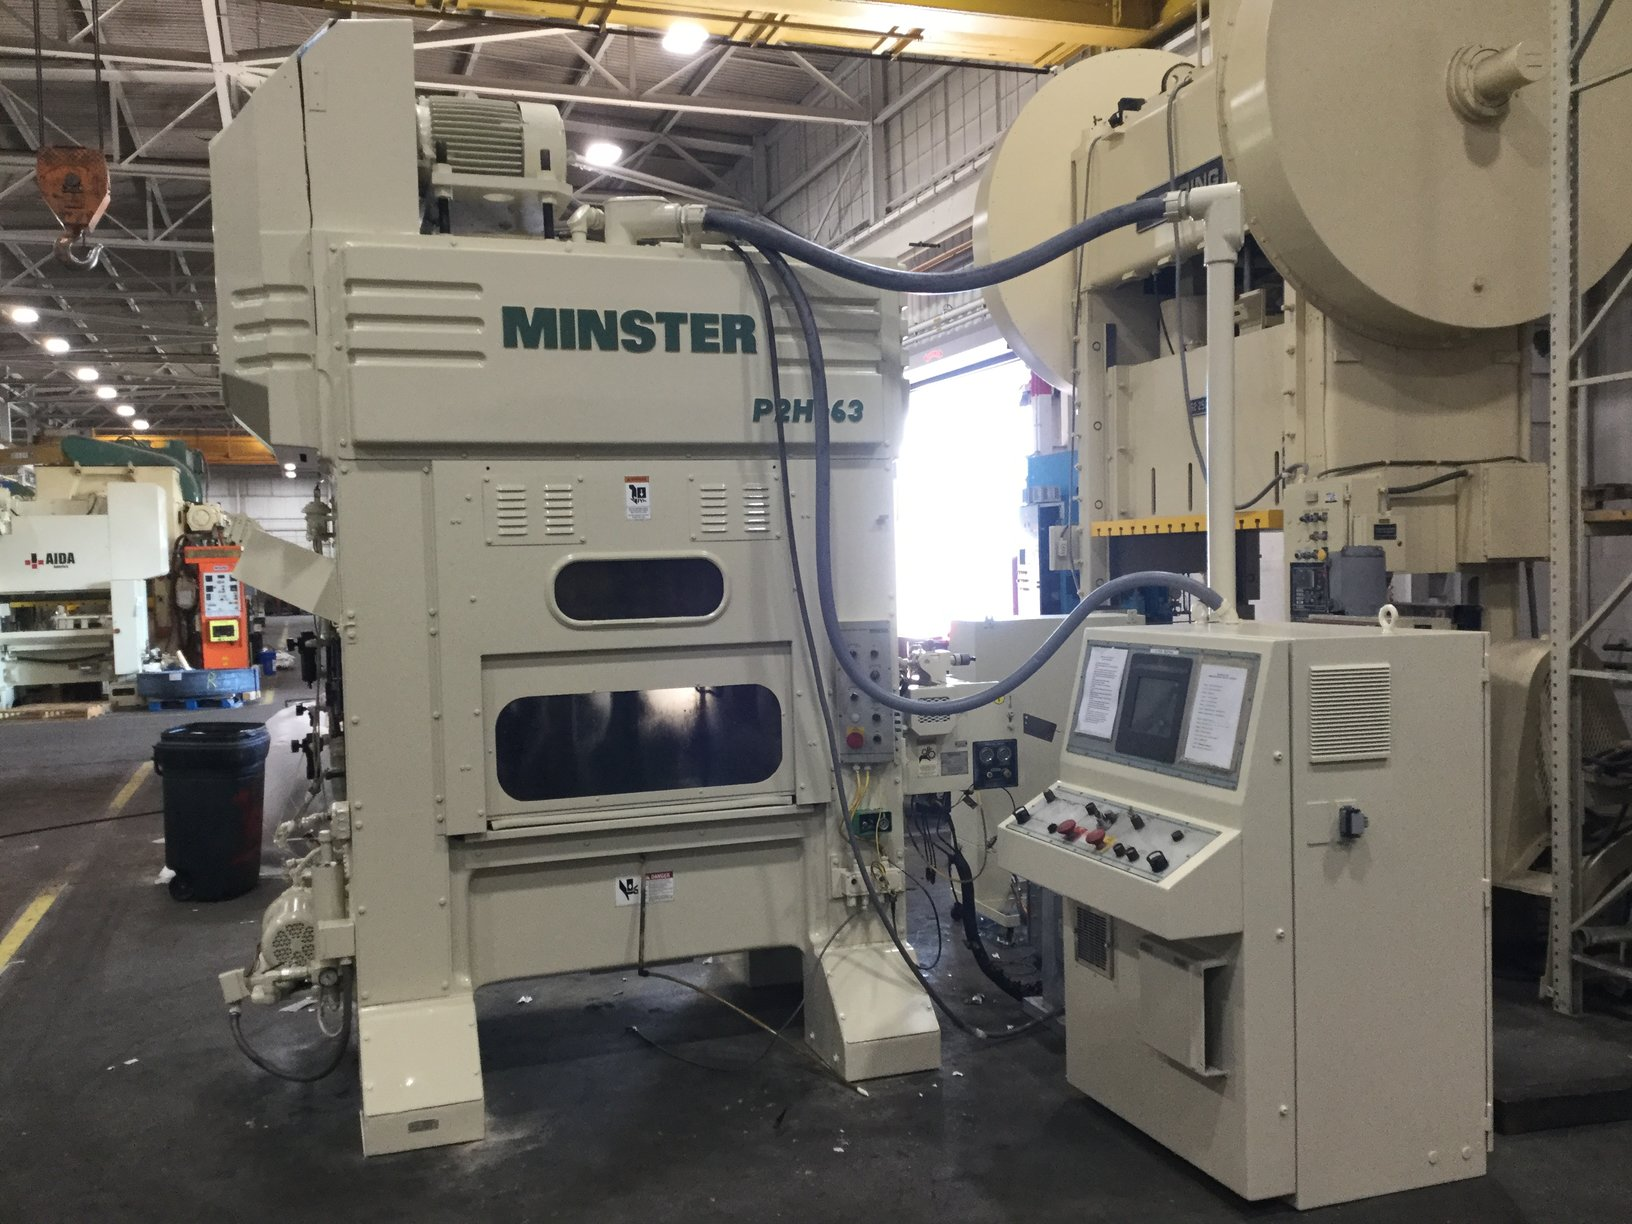 MINSTER P2H-63 HIGH SPEED PRESS